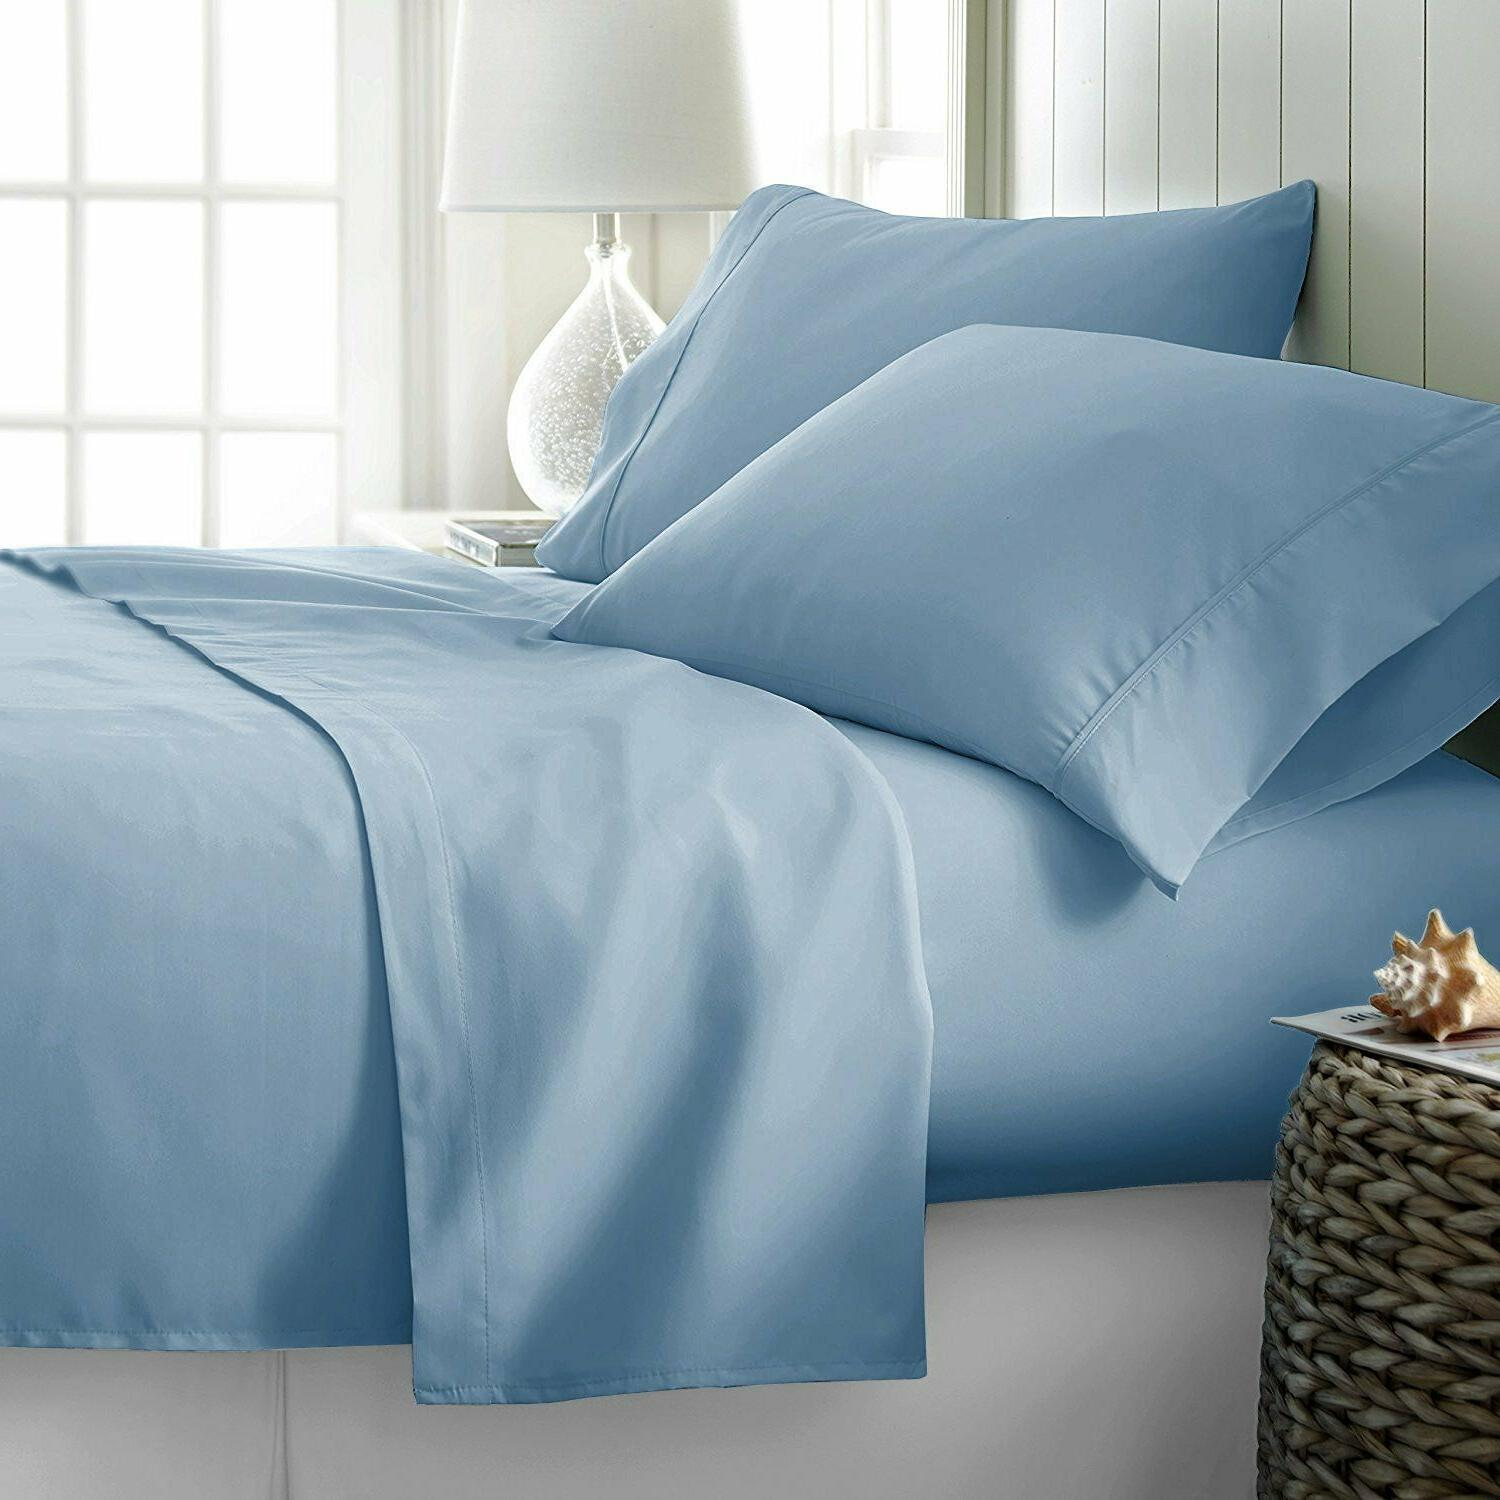 100% Piece Bed Sheets - 600 Blue